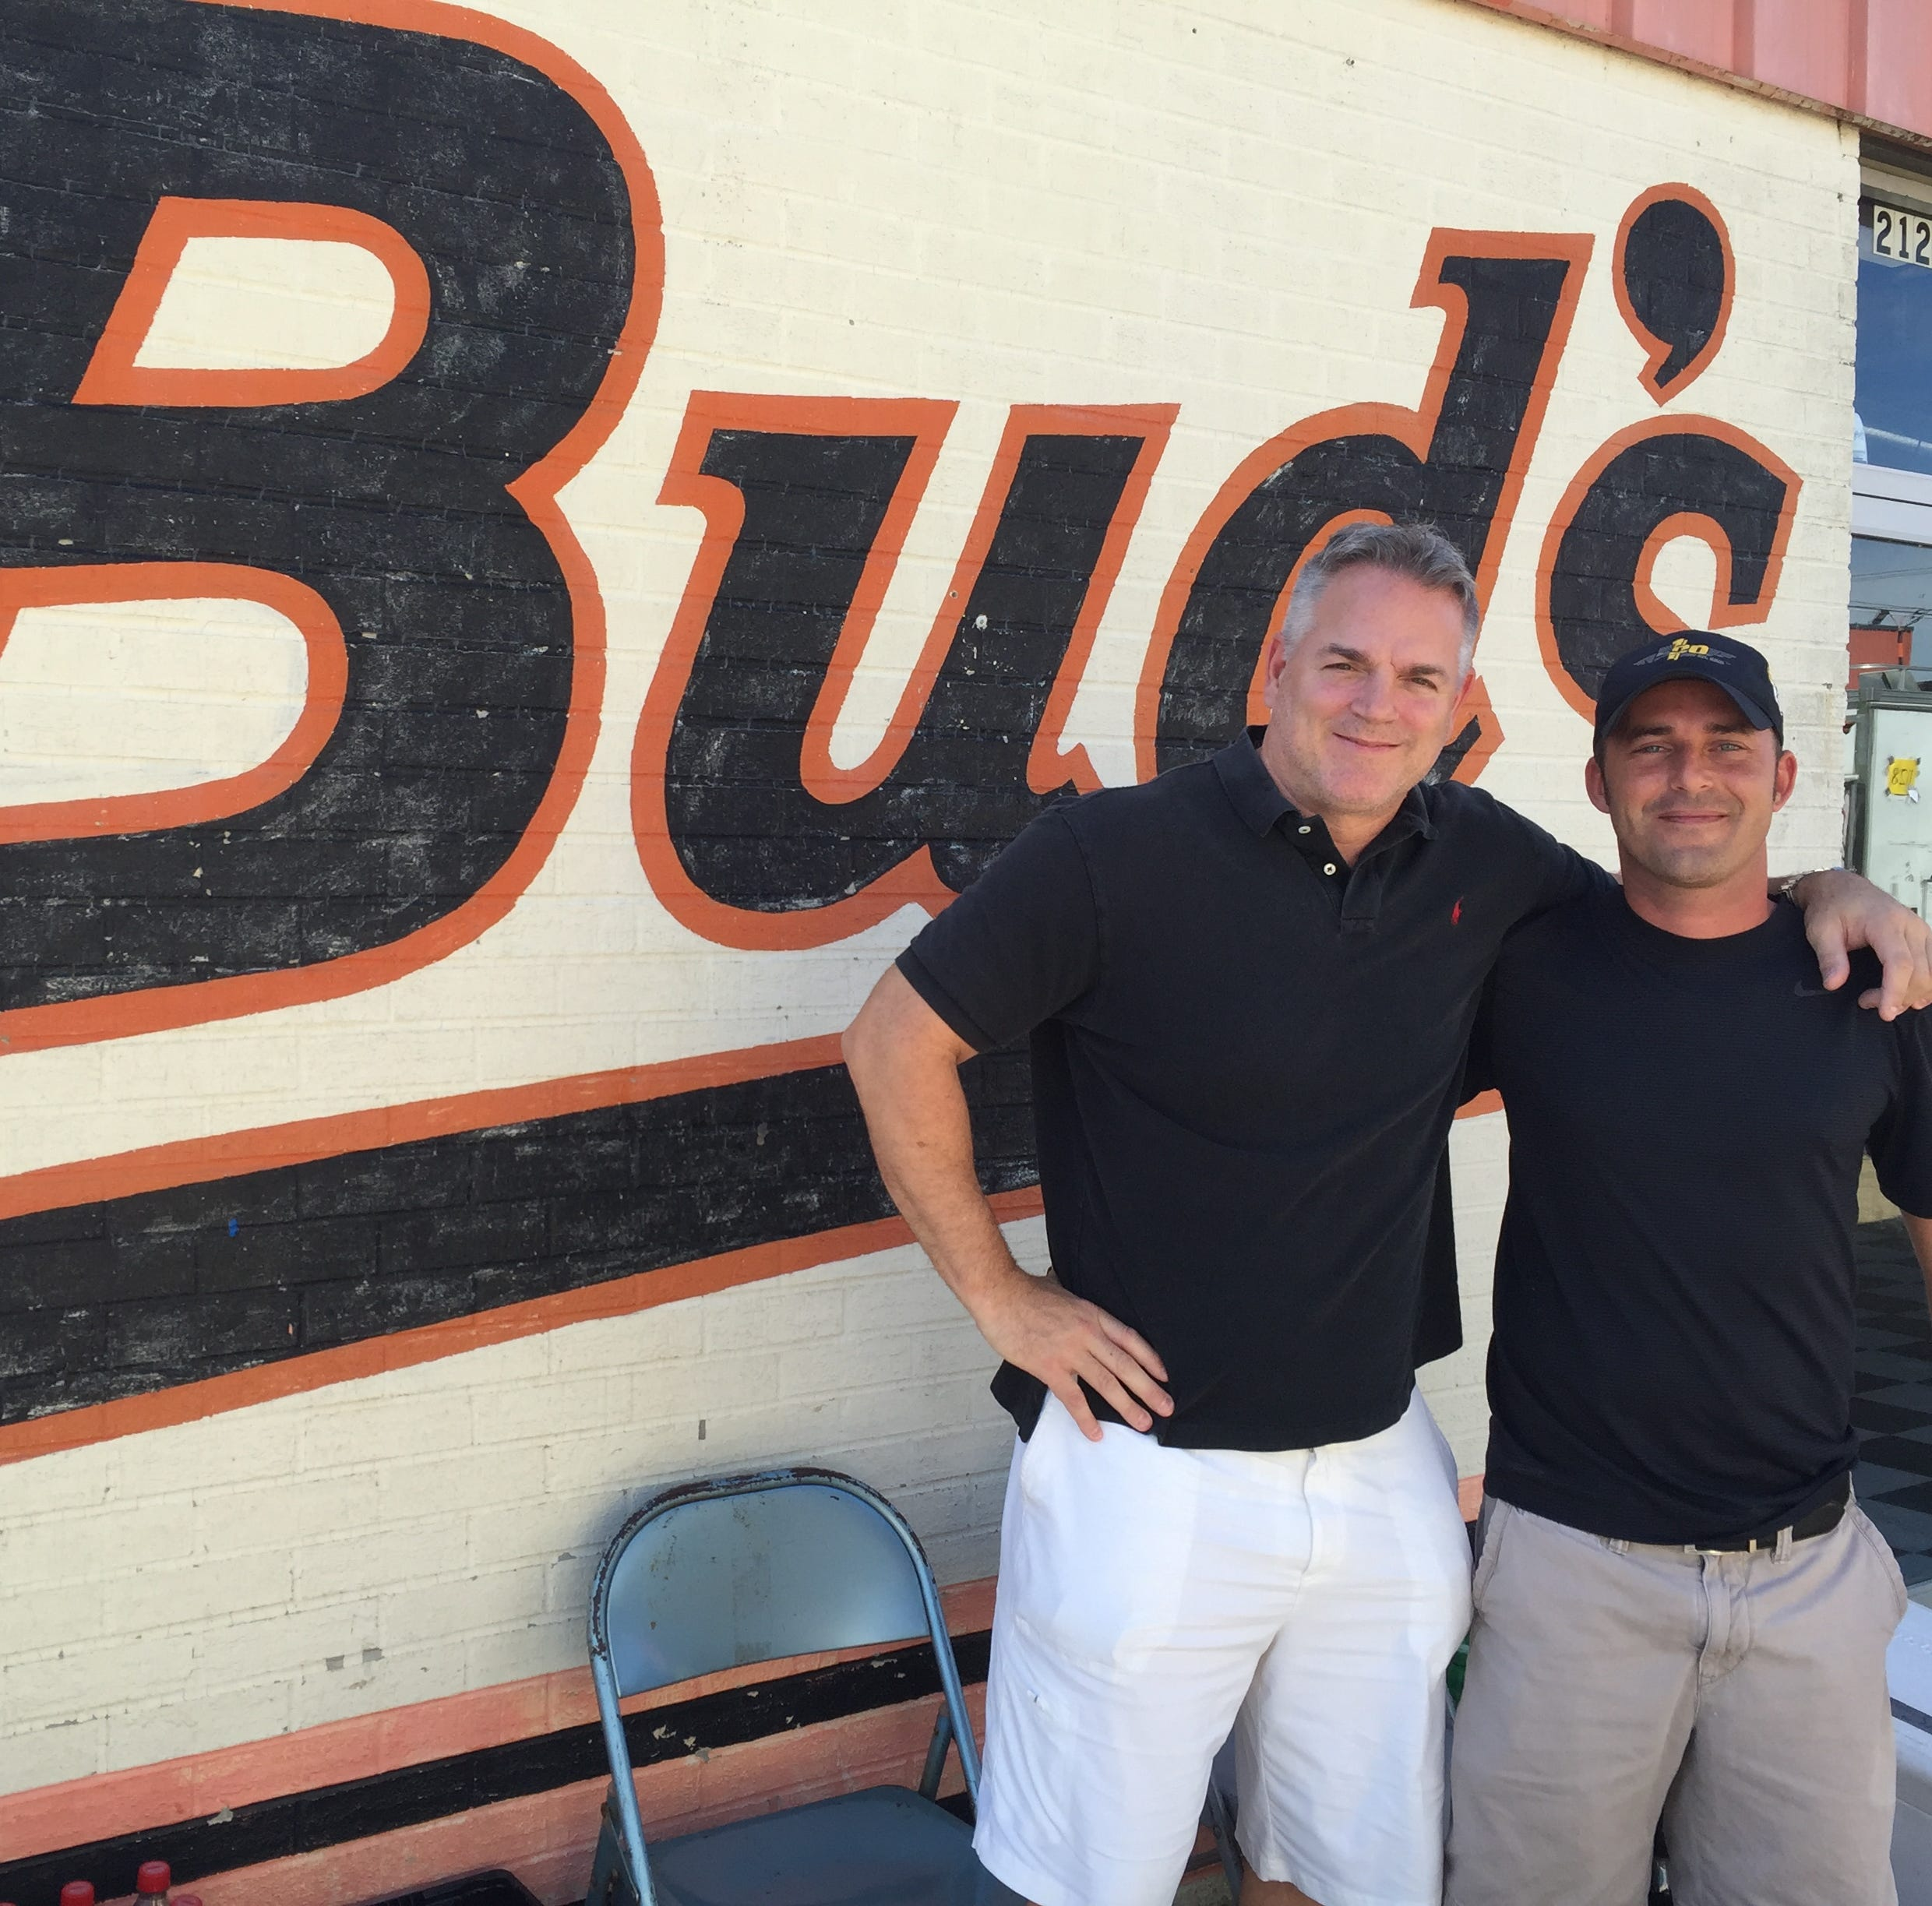 Bud's Bar & Grill on West Franklin in Evansville to be open by end of 2018, owners say